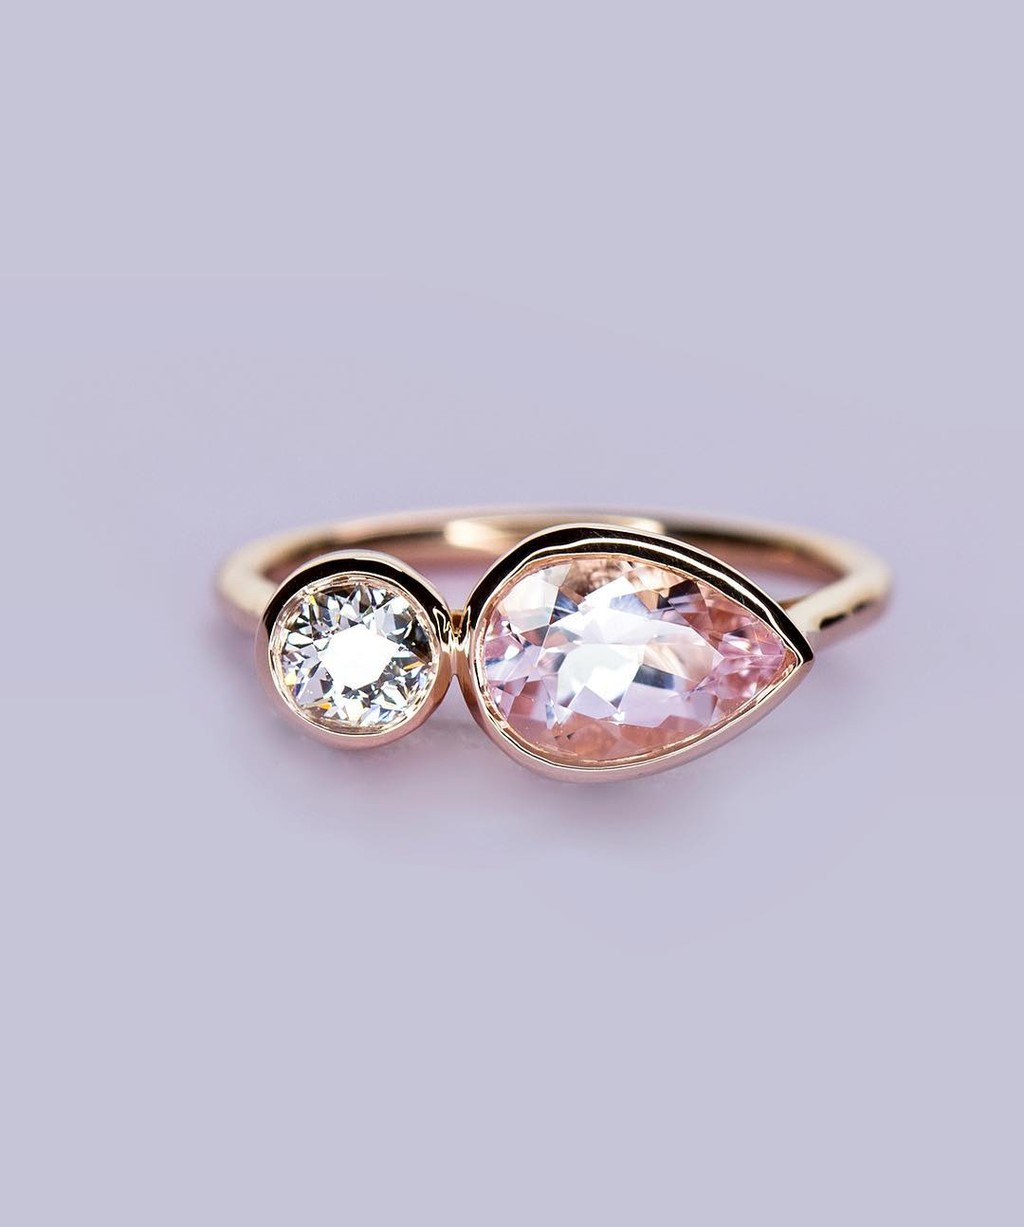 Antique Old European Cut Diamond + Fair-trade No-Heat Morganite = Toi et Moi Perfection!